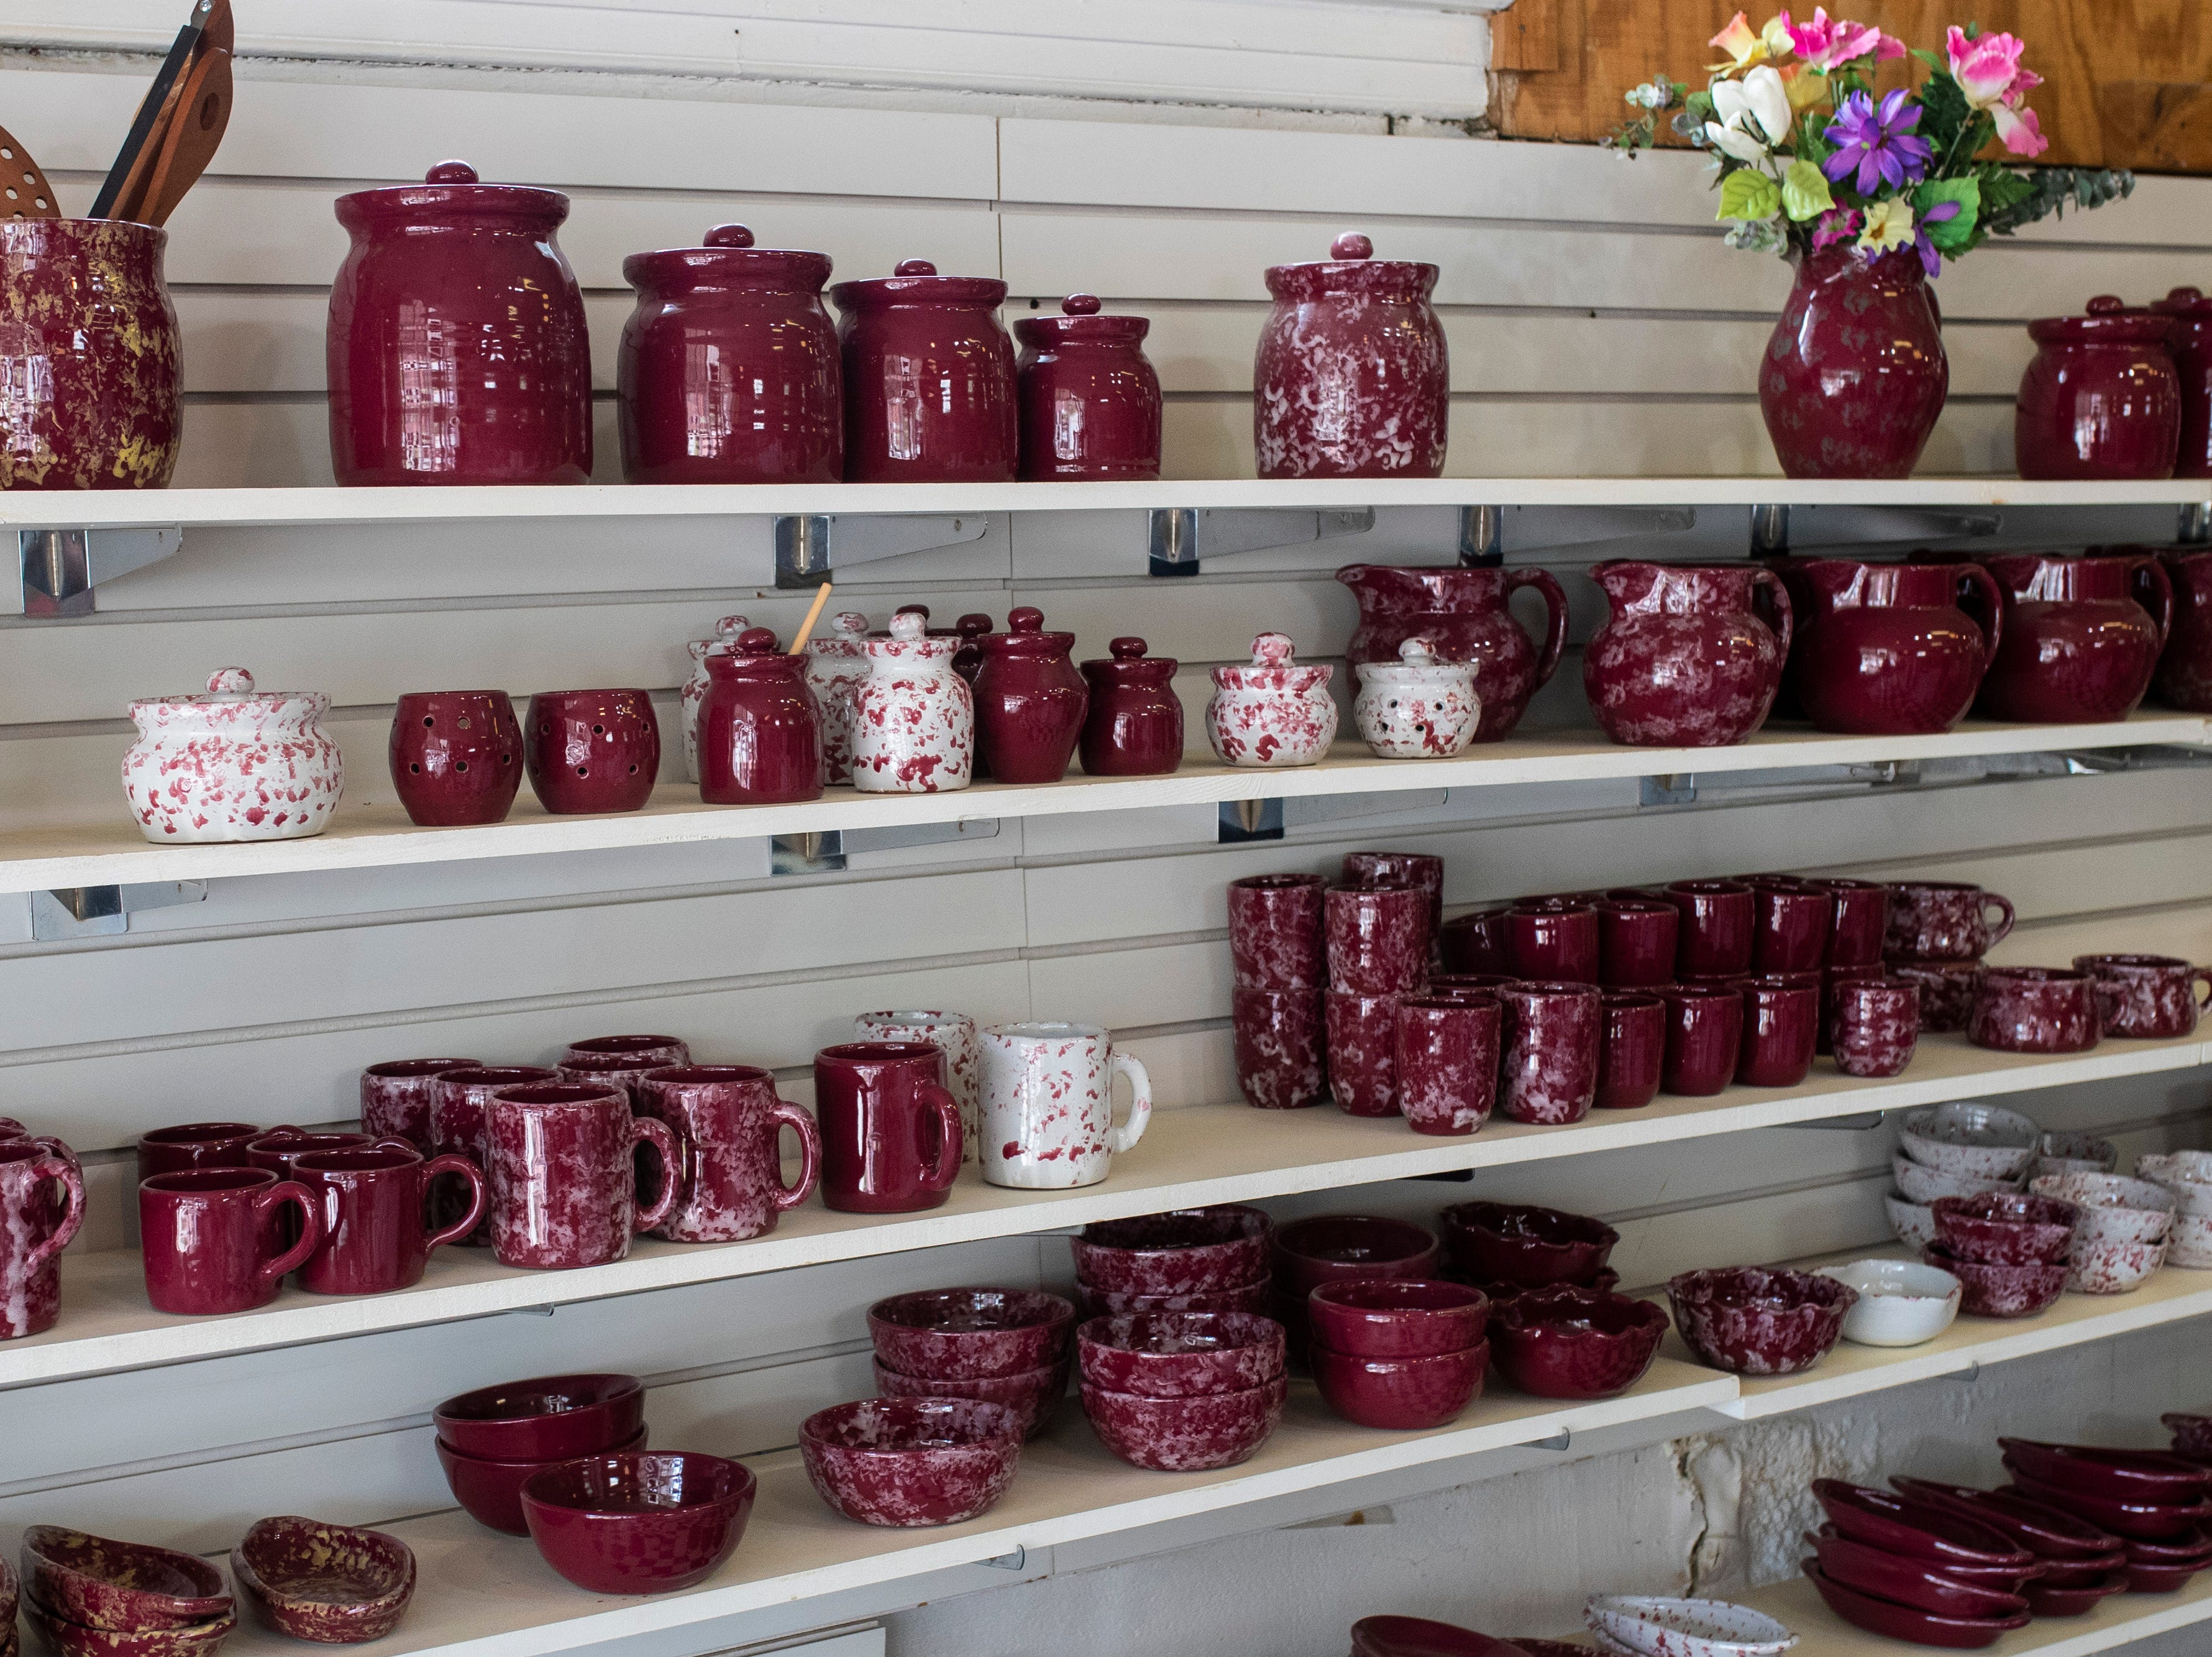 Potter for sale lines the shelves inside the Little Bit of Bybee pottery shop in the Middletown neighborhood. May 8, 2019